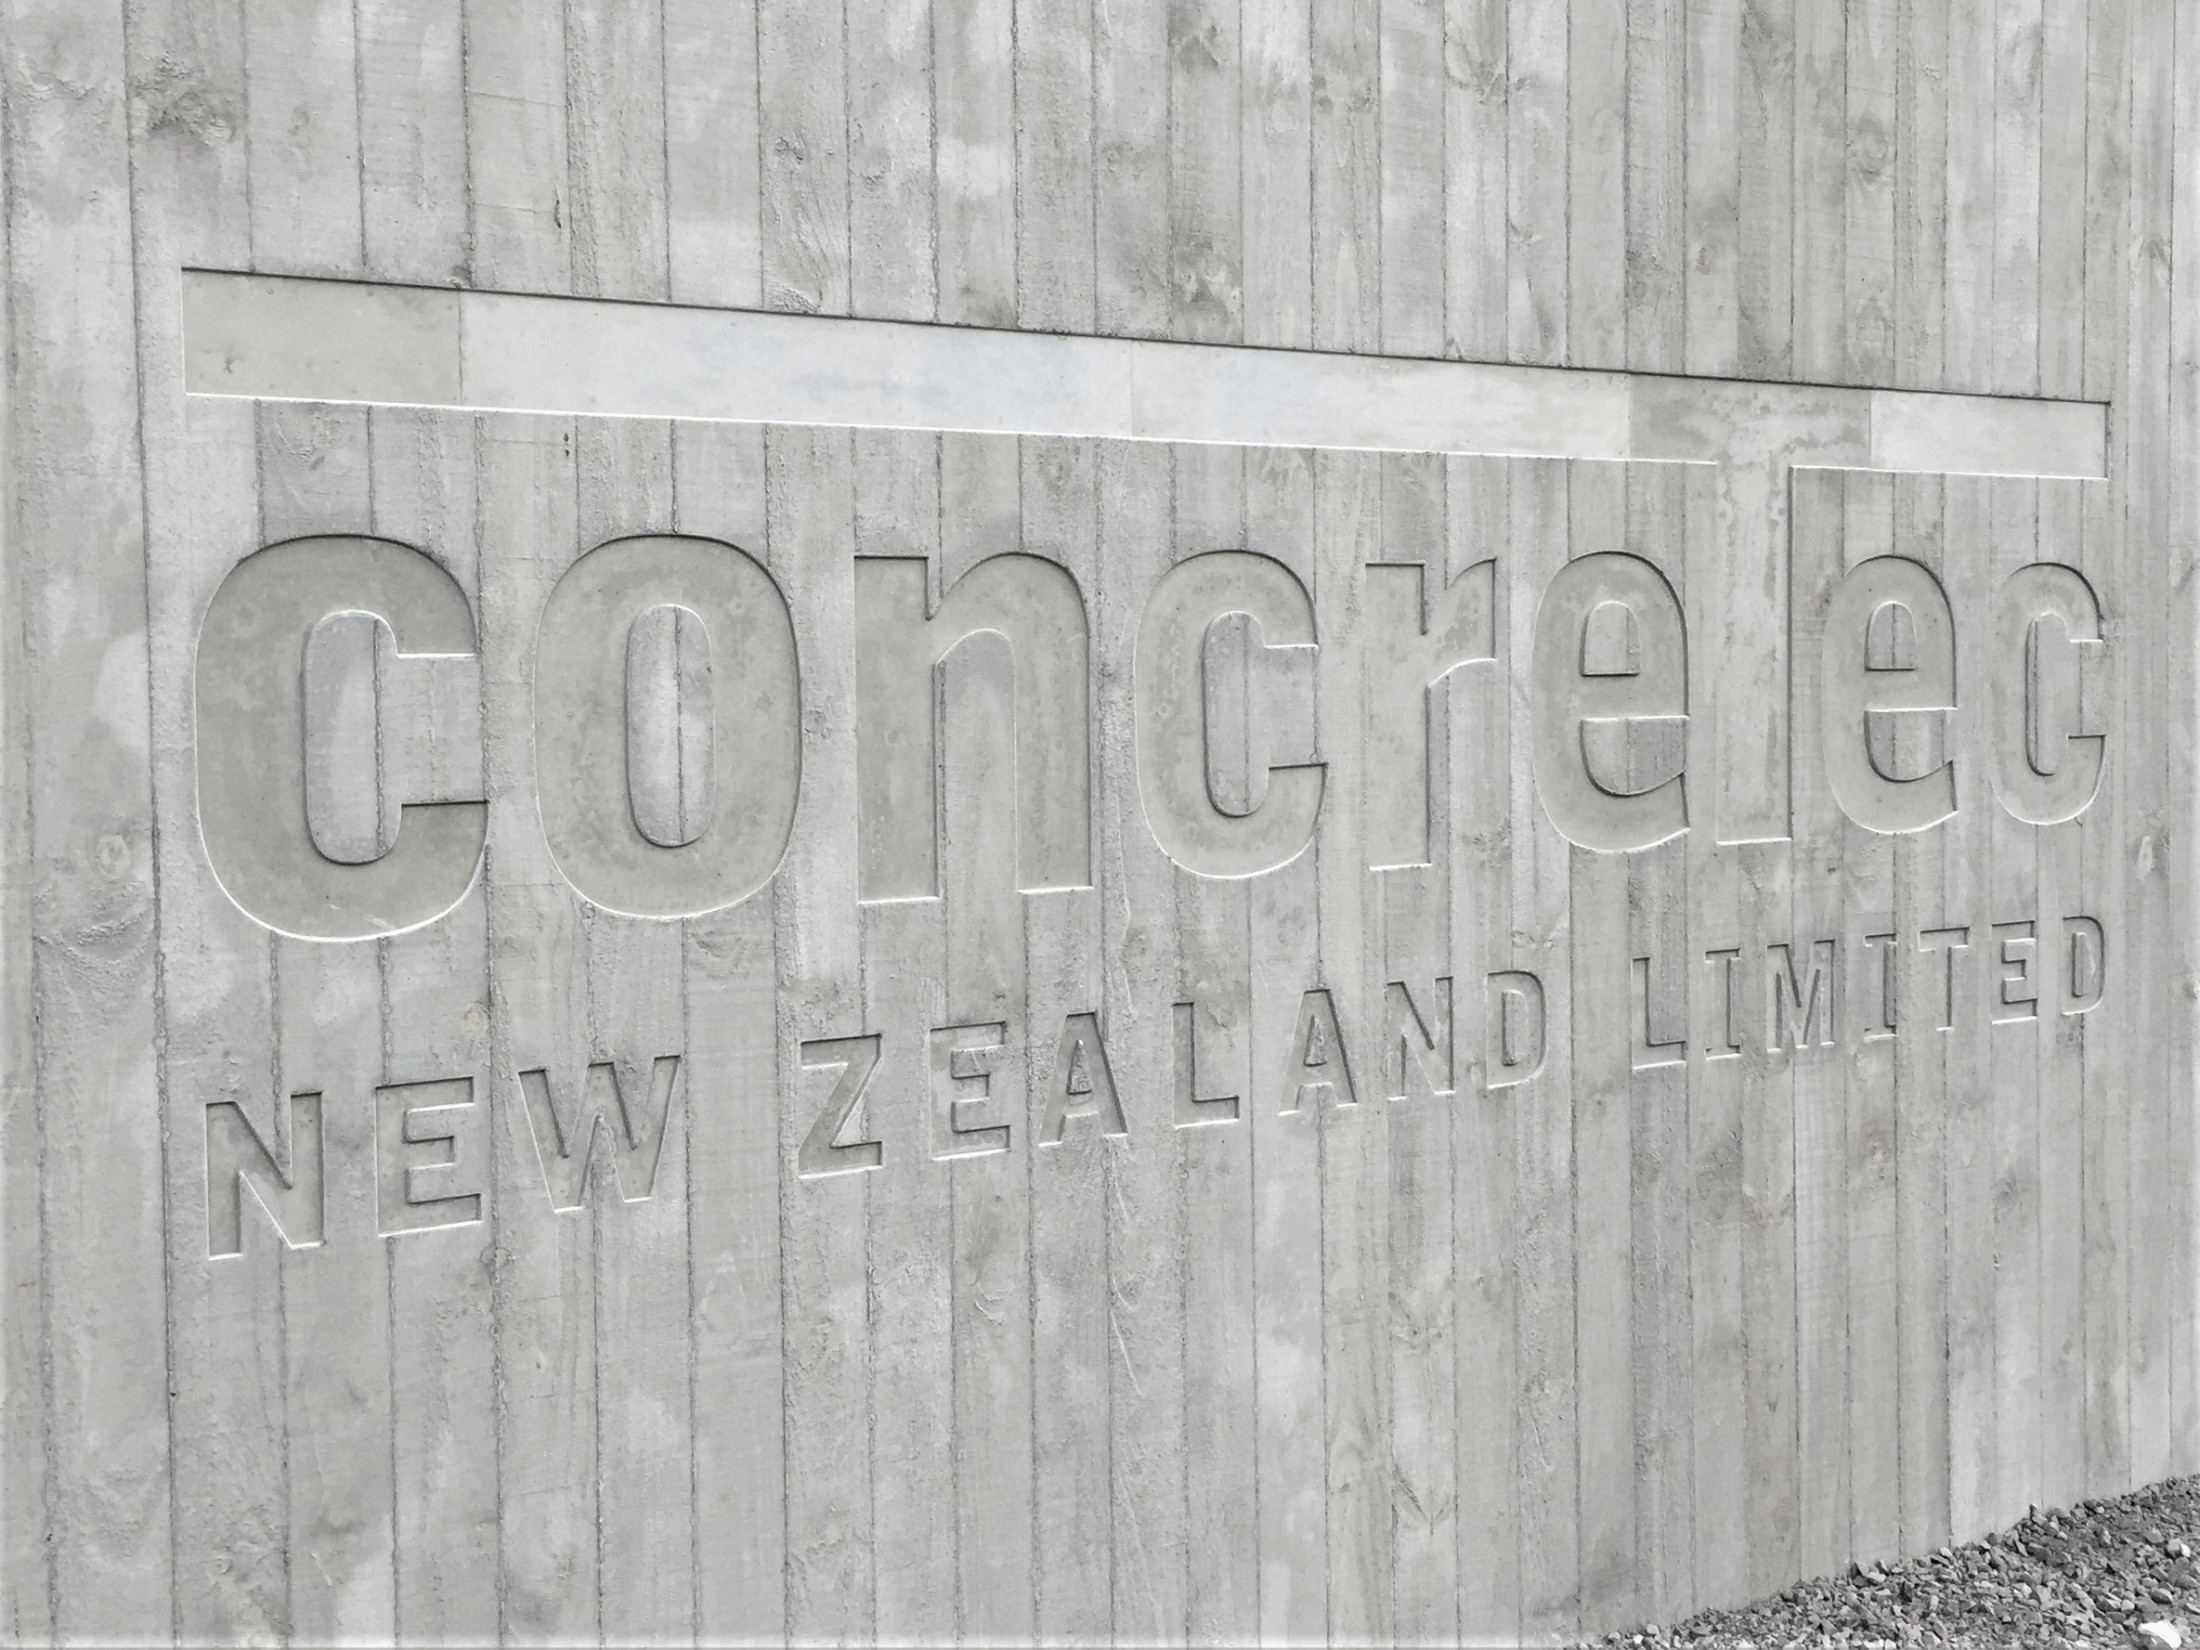 Concretec Nz Name In Timber Grain Pattern